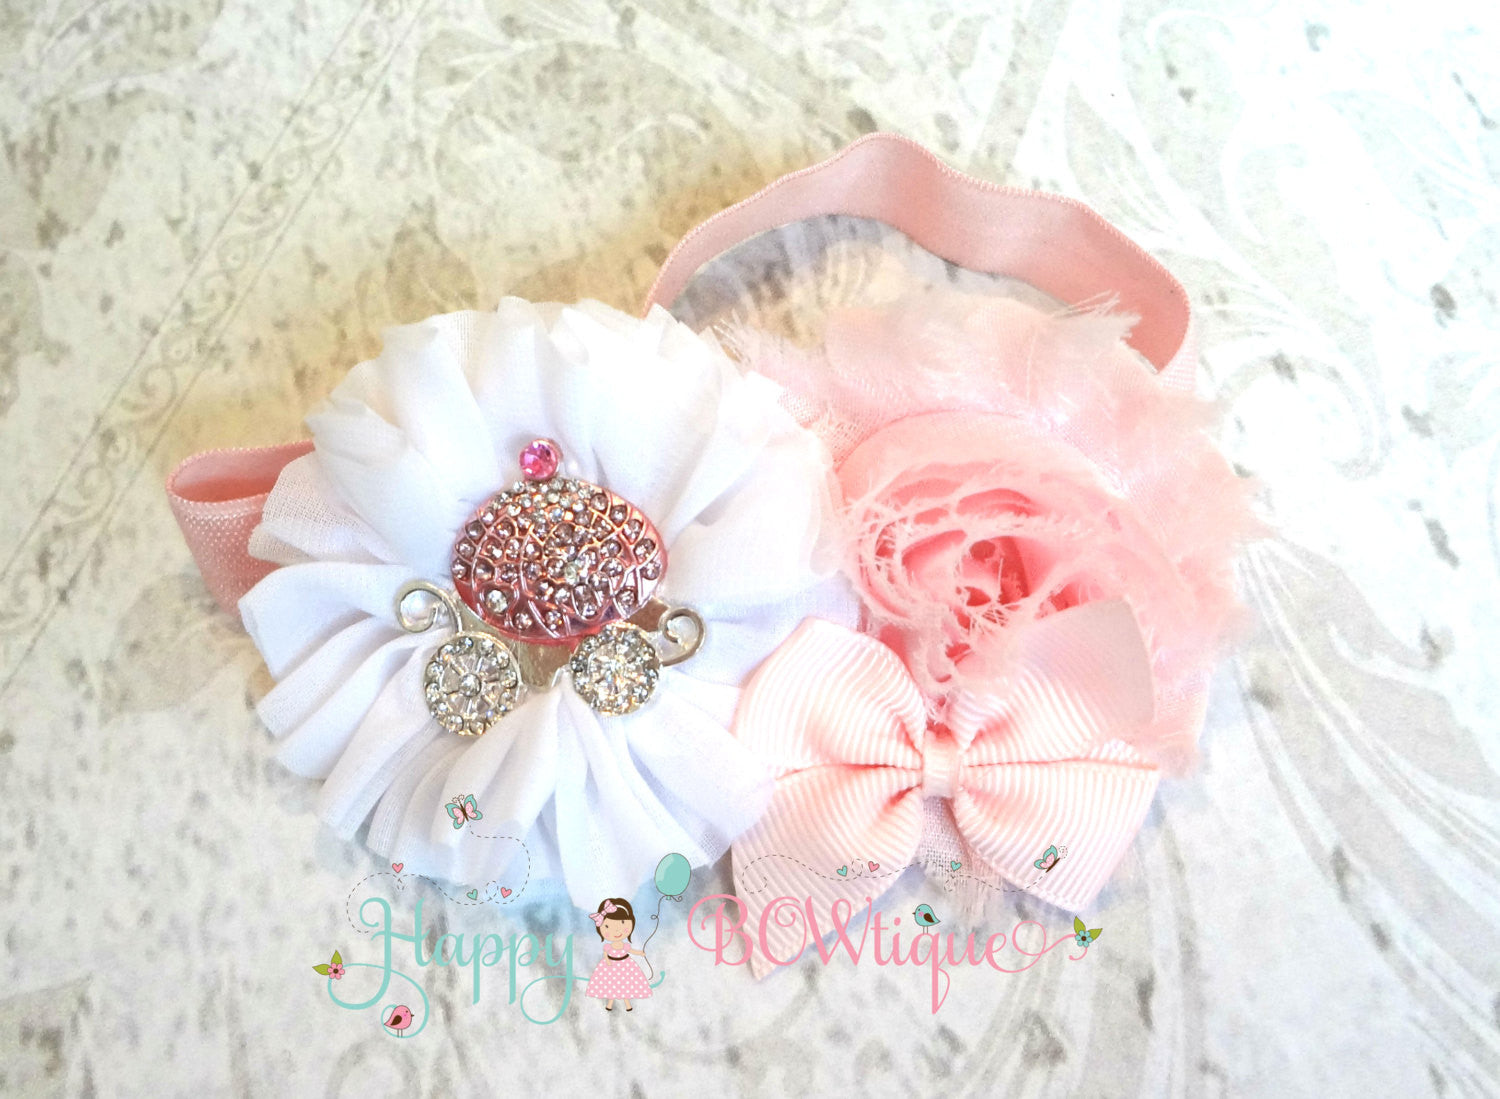 Princess Blue Carriage Headband/ Cinderella Headband - Happy BOWtique - children's clothing, Baby Girl clothing